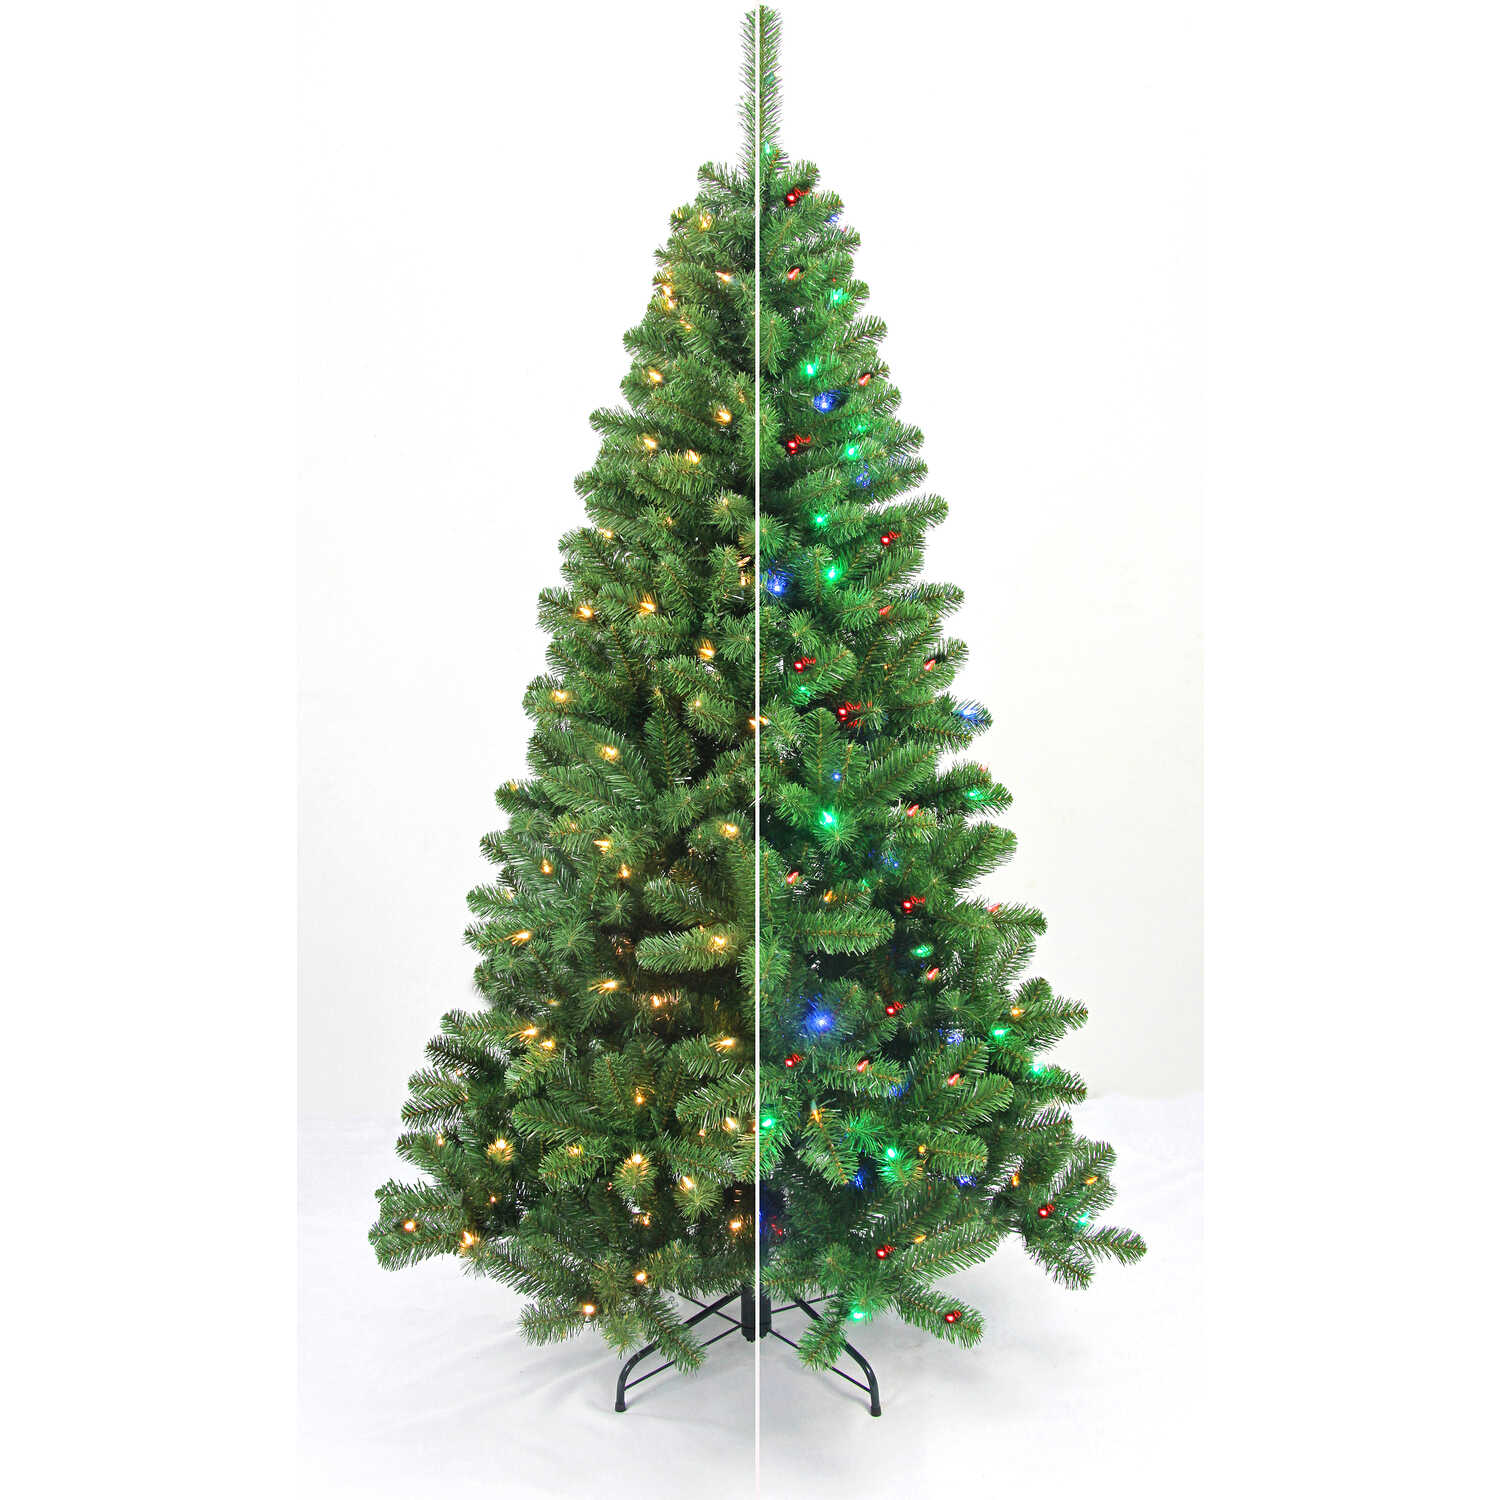 Celebrations  Home  6-1/2 ft. Multicolored  Prelit Christmas Tree  LED Artificial Tree  200 lights